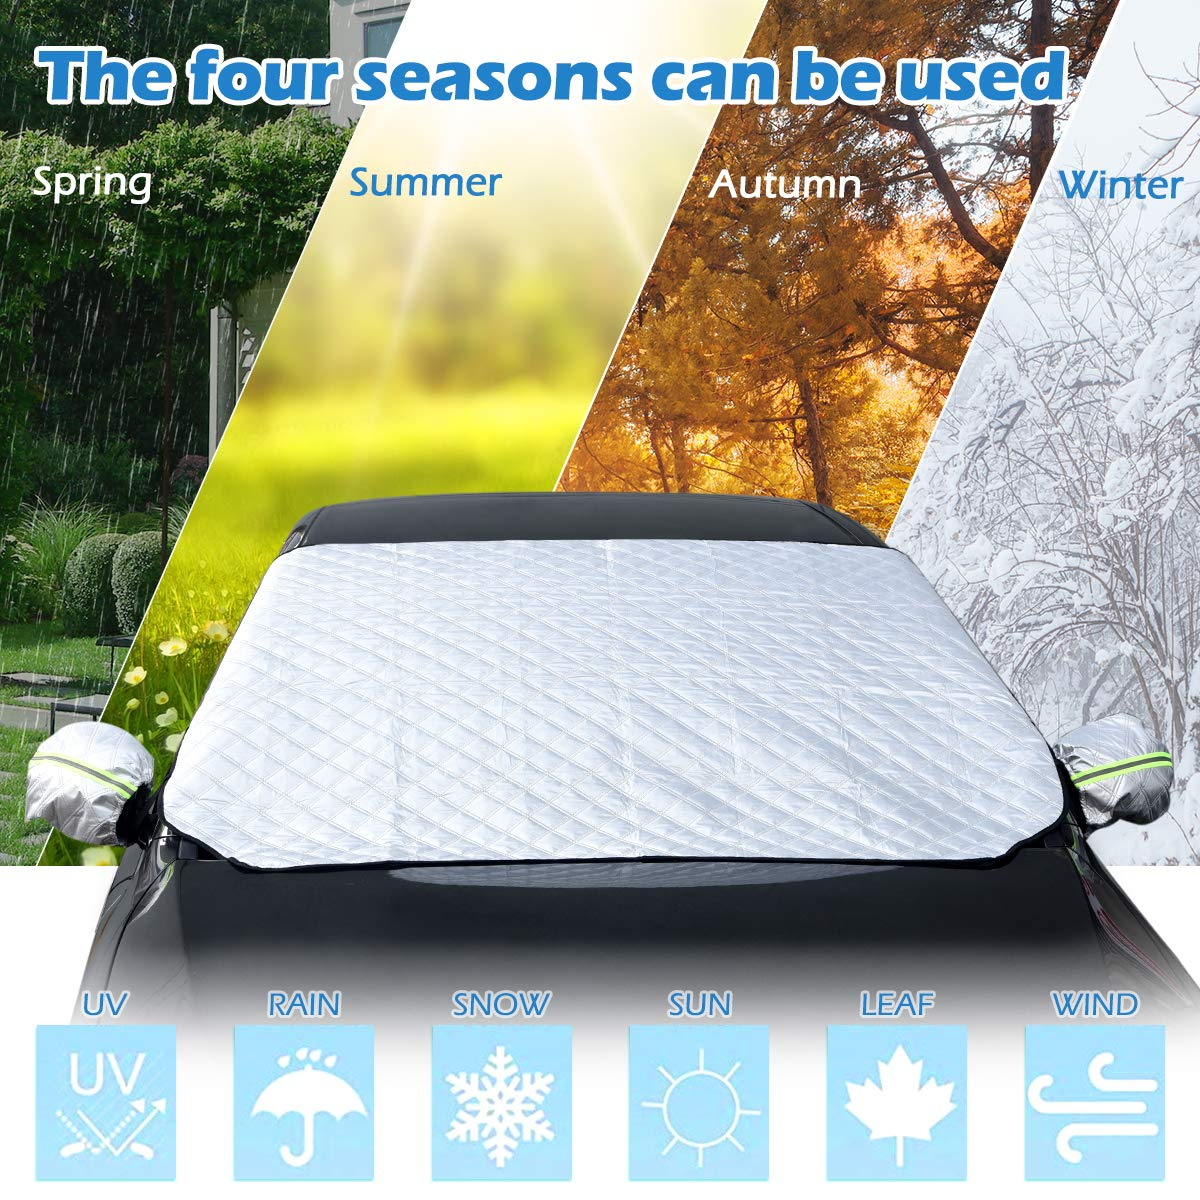 """58.7/"""" x 39.4/"""" Zhuosilang Sotical Car Snow Cover Windscreen Frost Cover Snow Cover Windshield Snow Cover Ears Sun Dust Water Resistant Shade Protector Morning Time Saver Cars SUV in All Weather"""